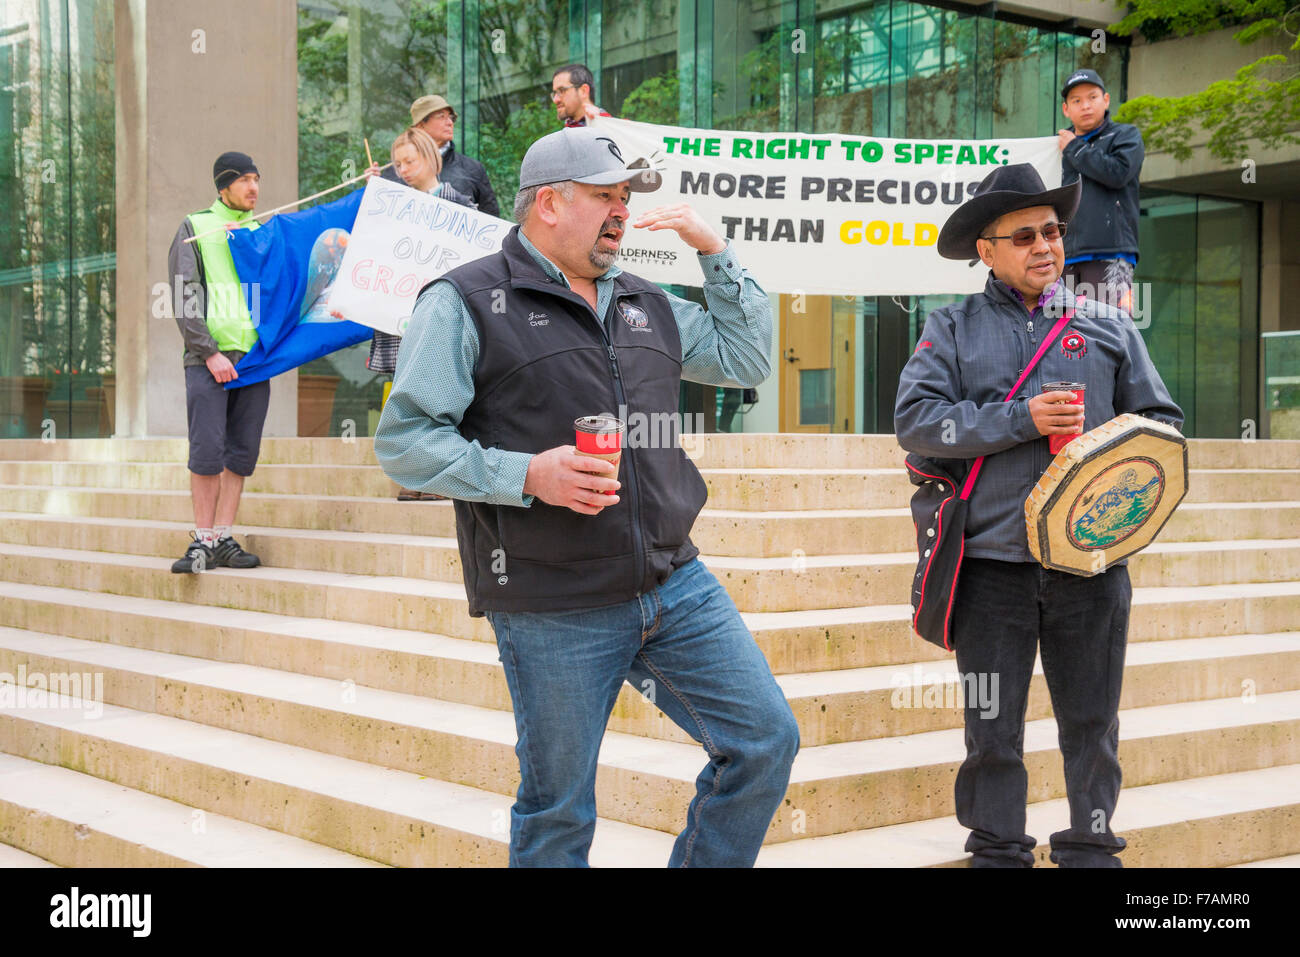 Tsilhqot'in Nation Chiefs outside Provincial Law Courts, Vancouver, British Columbia, Canada - Stock Image